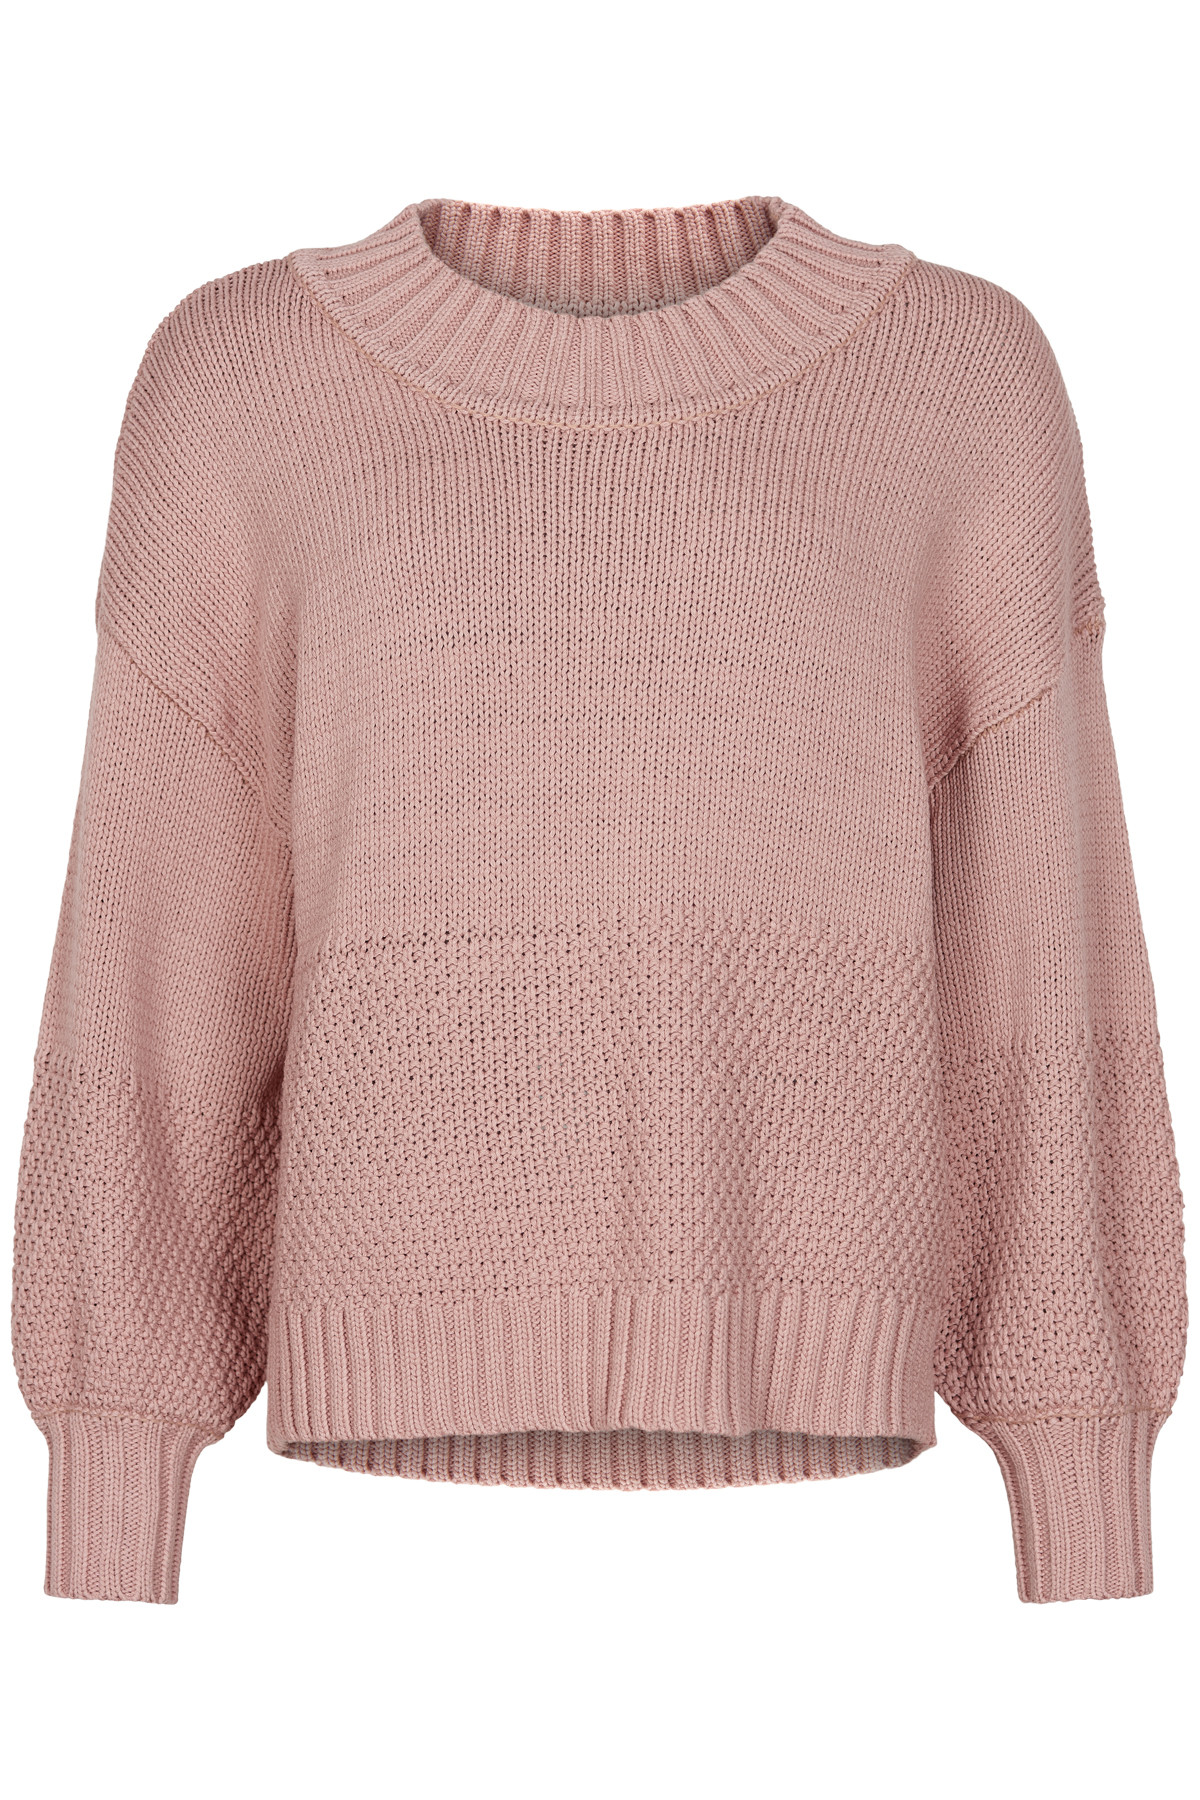 Image of   AND LESS ALANIESE PULLOVER 5120203 (Pale Mauve, XS)